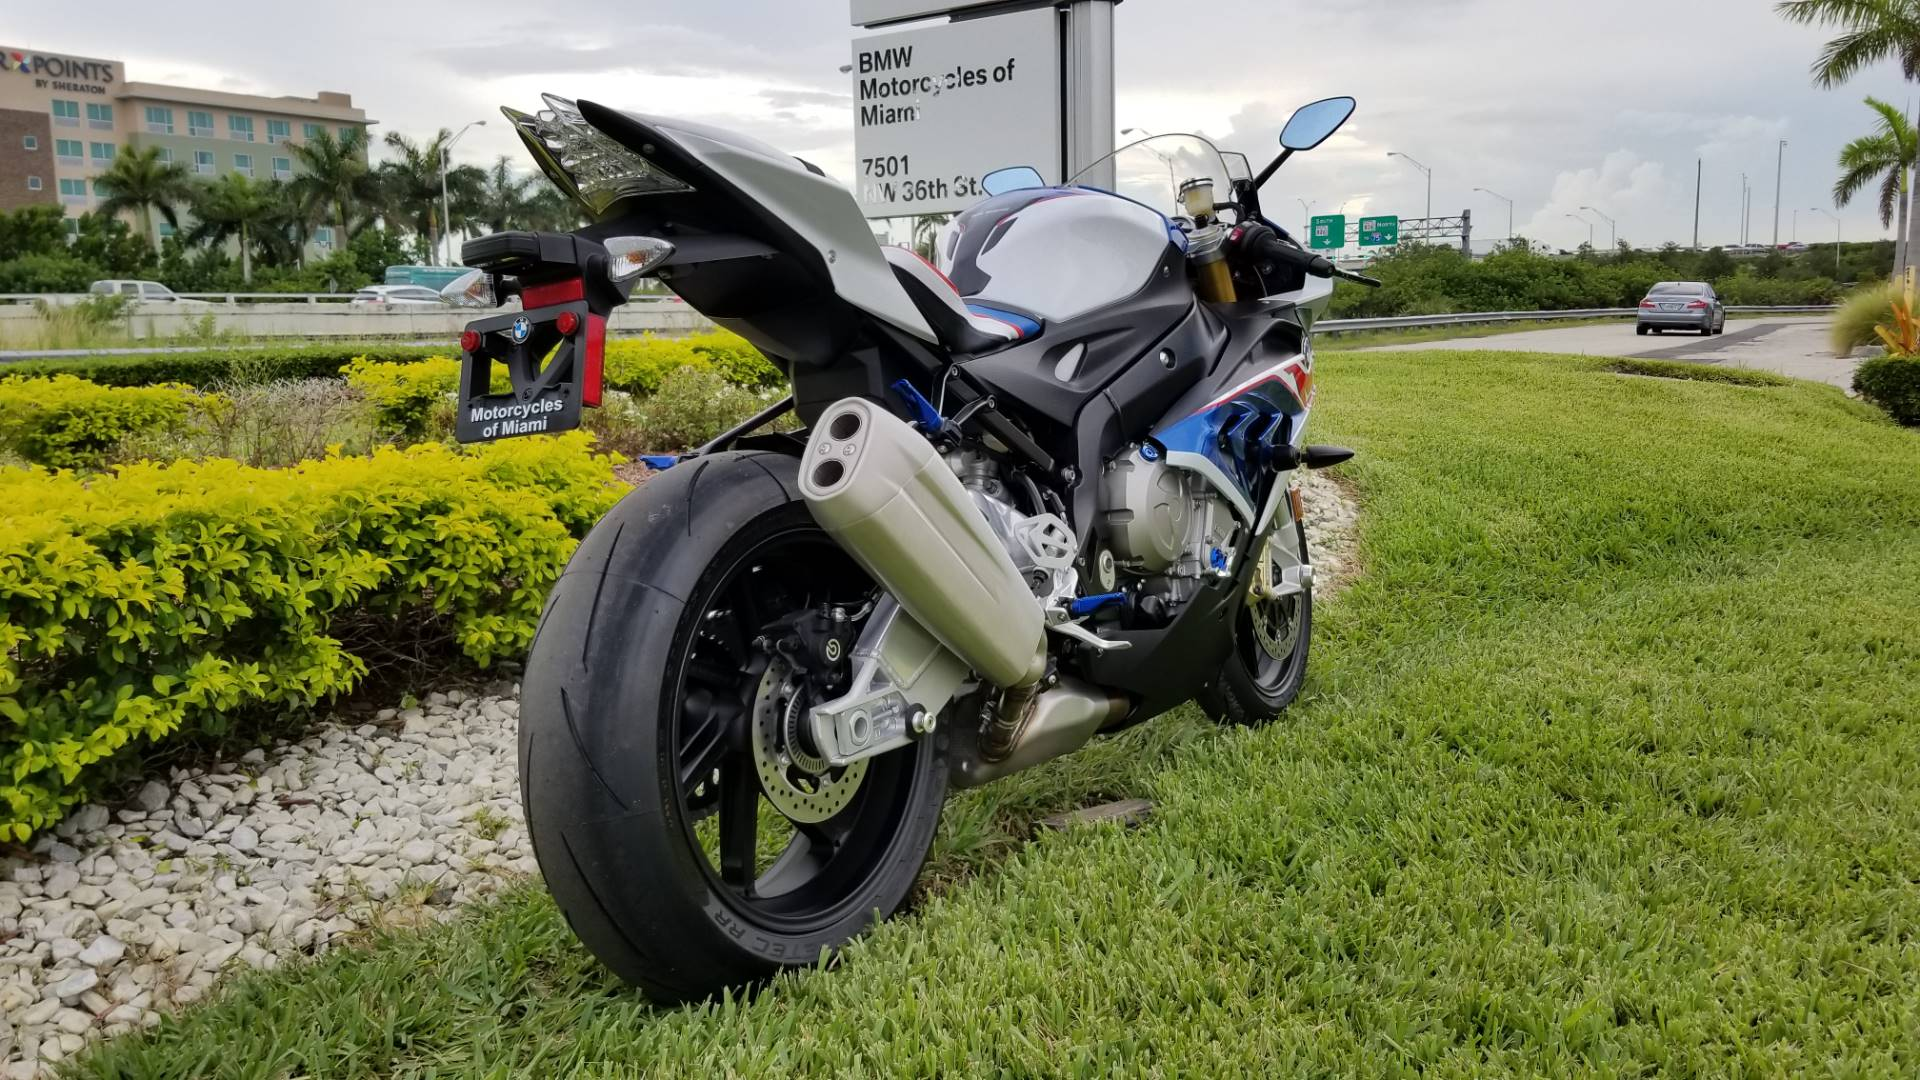 New 2018 BMW S 1000 RR for sale, BMW S 1000RR for sale, BMW Motorcycle S1000RR, new BMW 1000RR, RR, Sport, BMW.